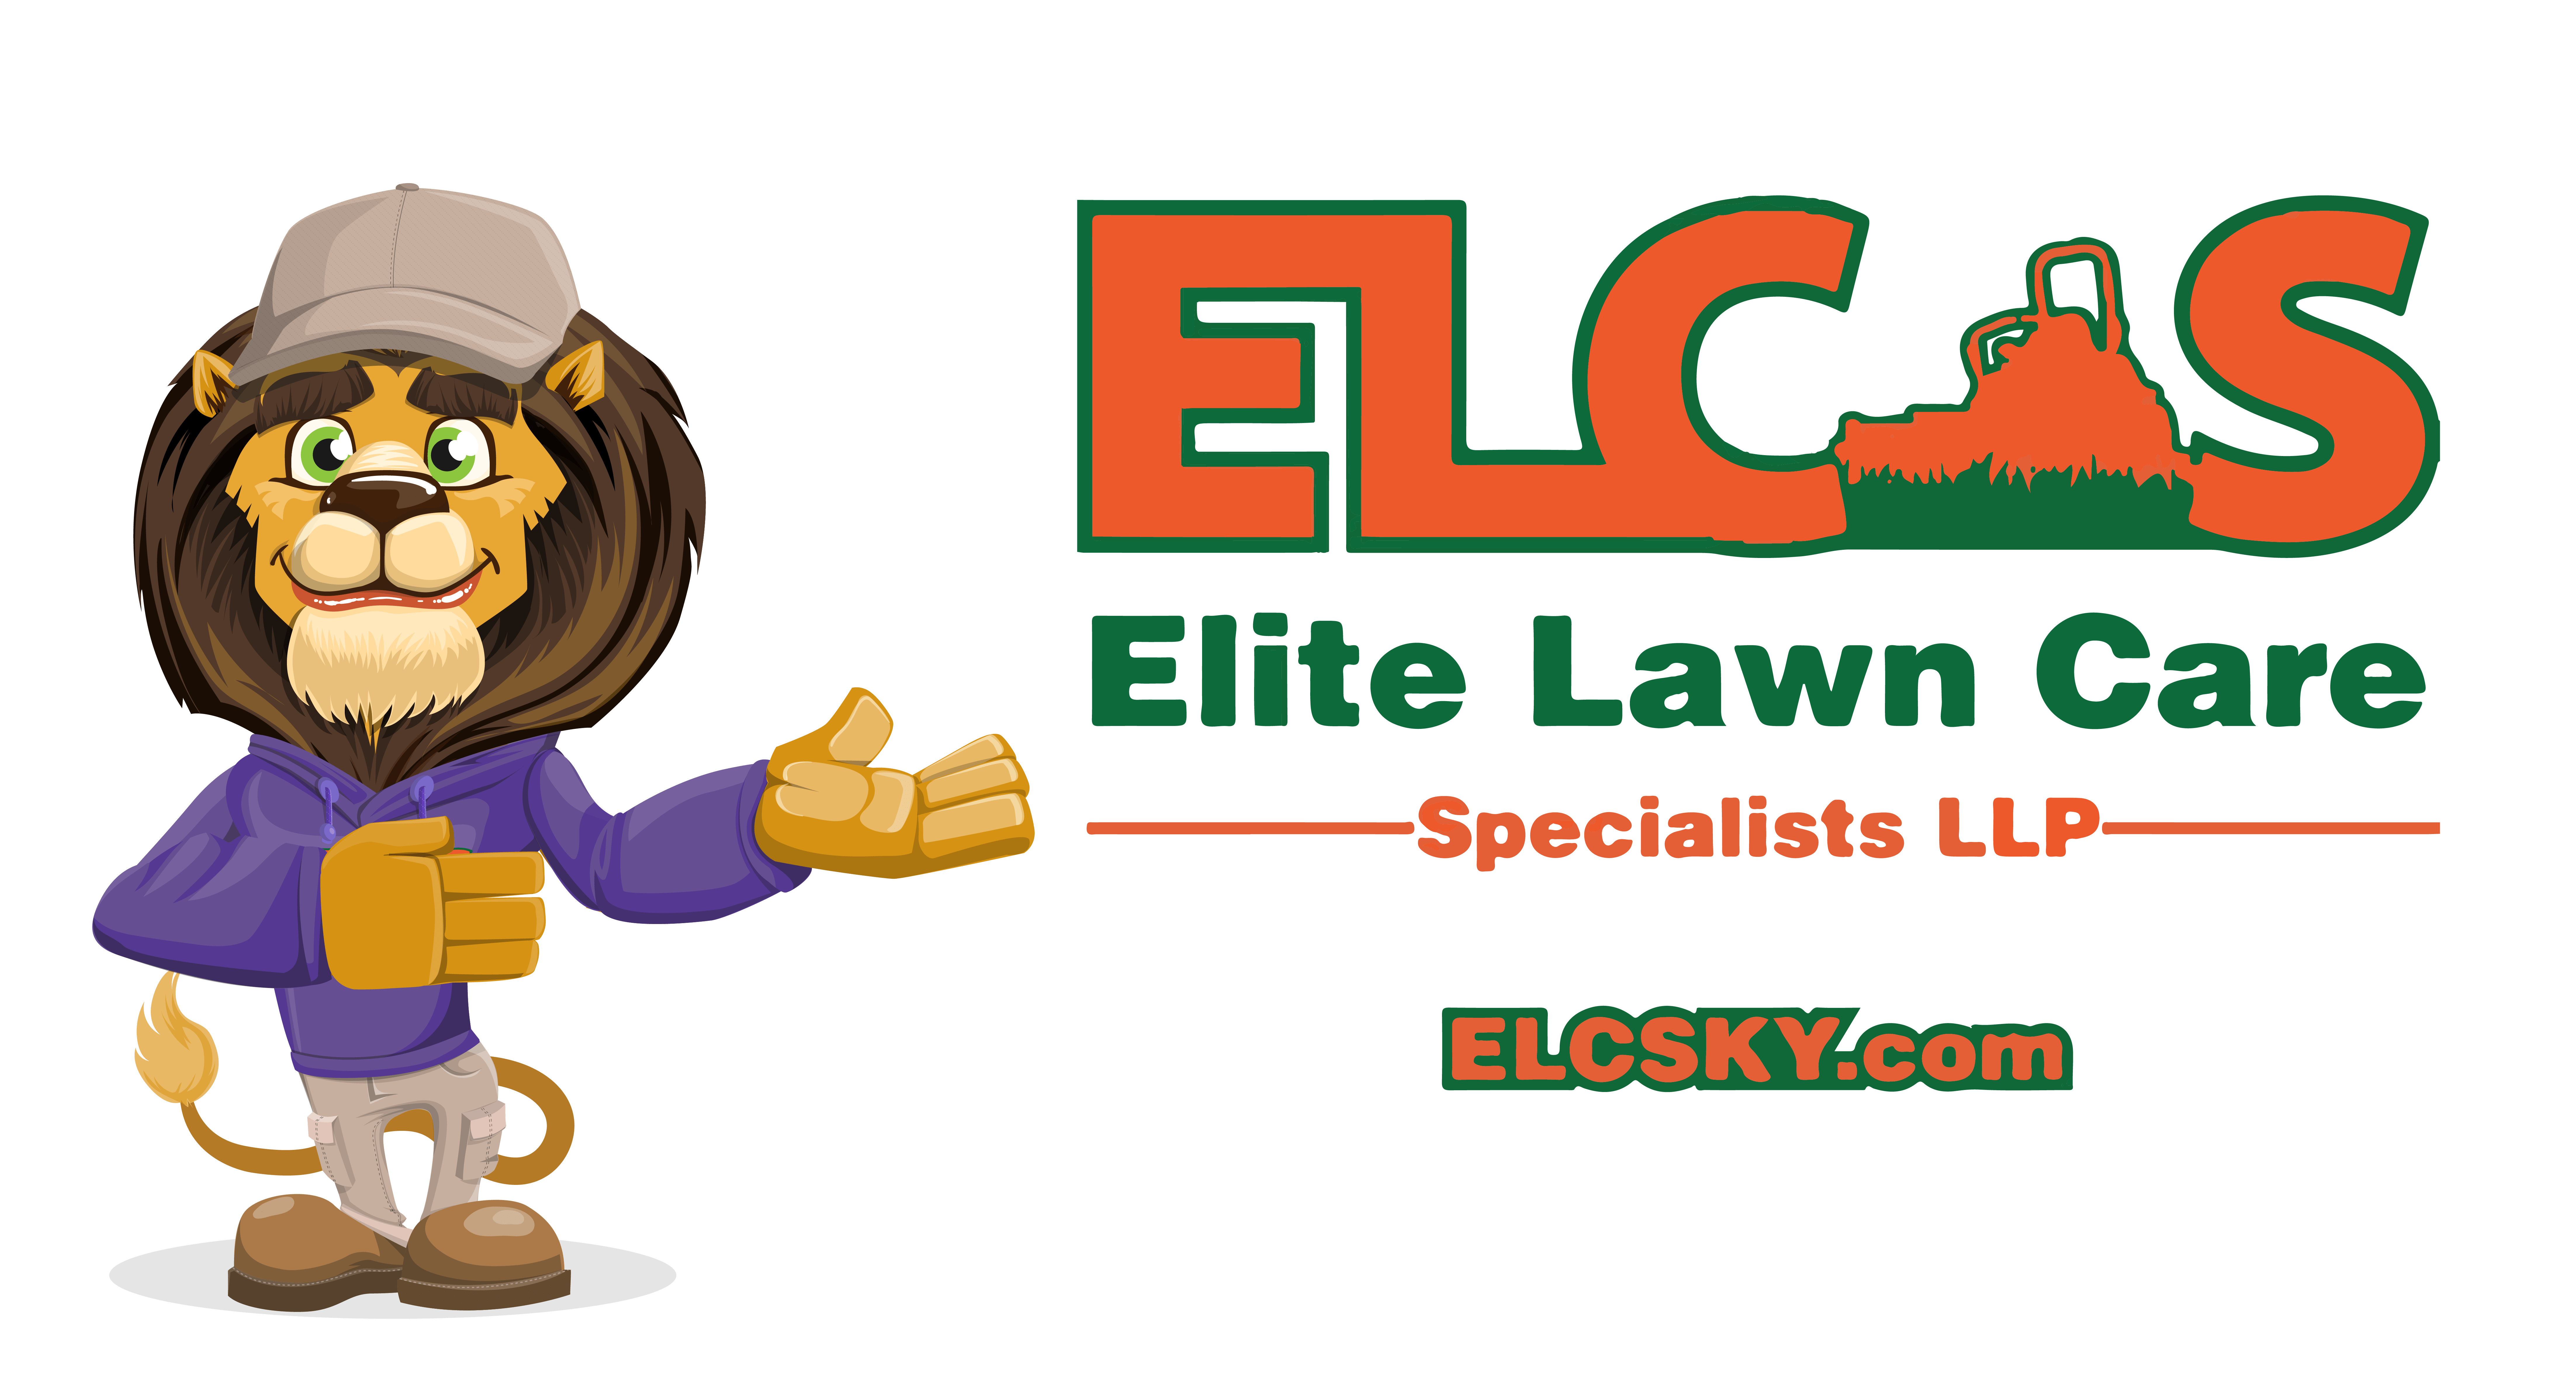 Elite Lawn Care Specialists LLP